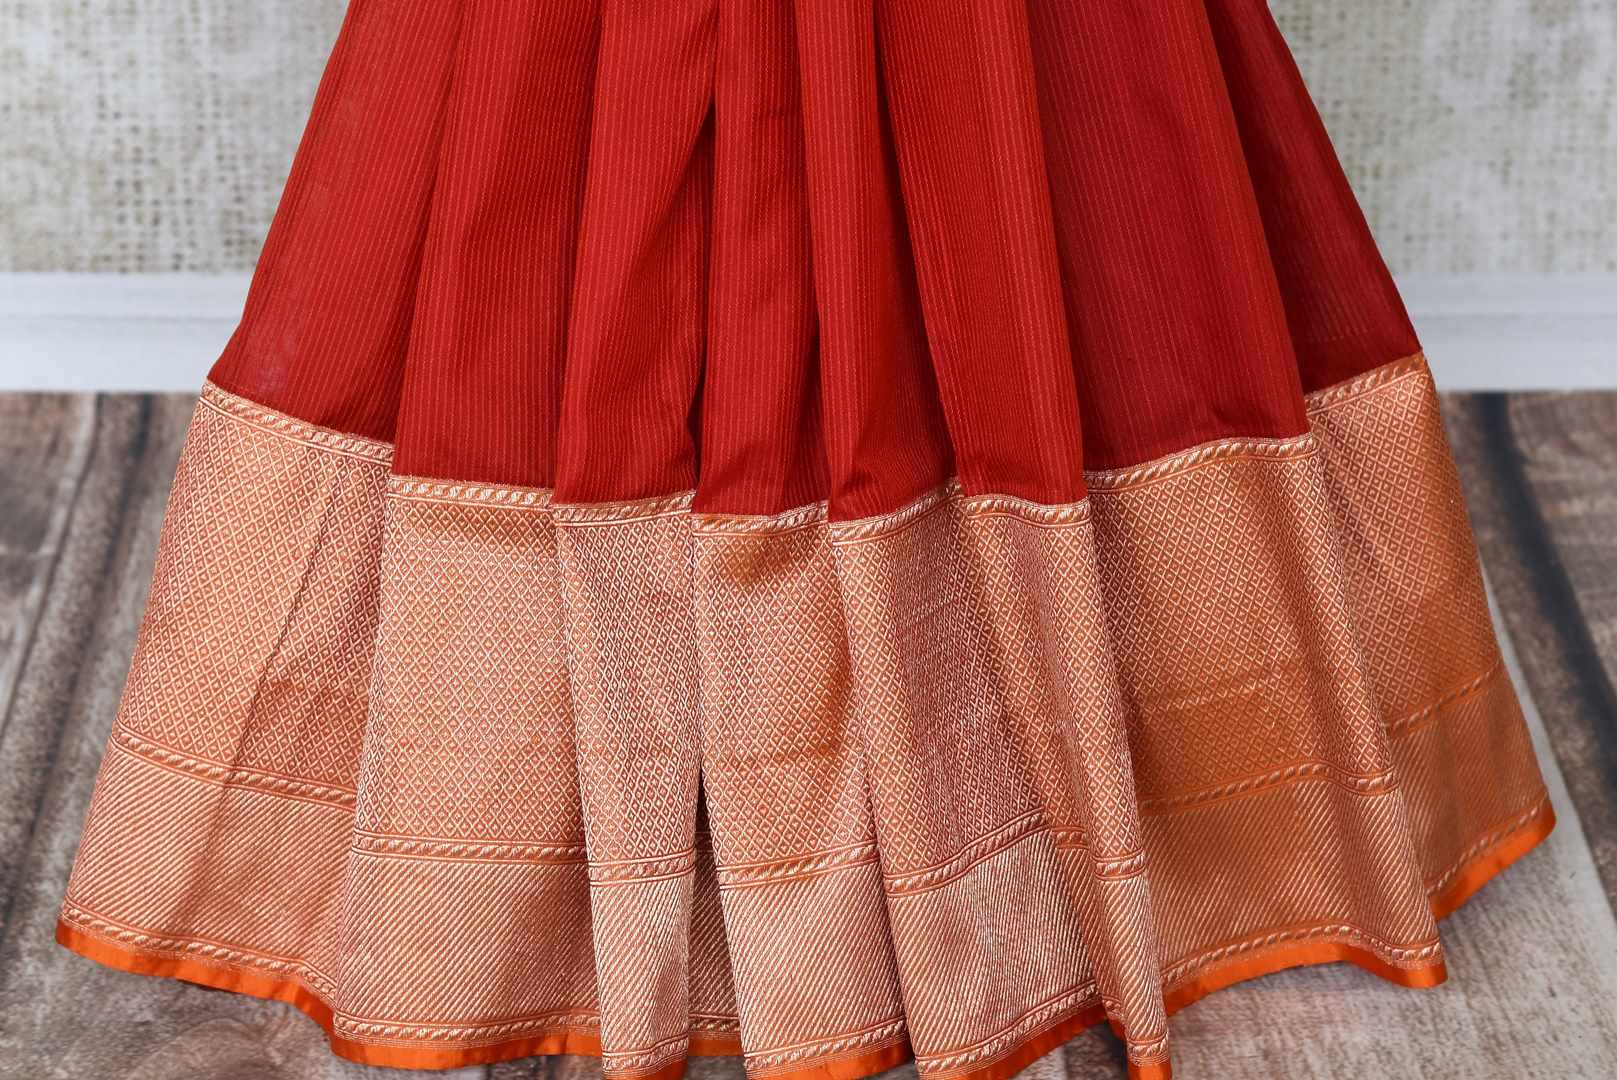 Drool-worthy designs scooped with stunning aesthetics in this graceful red banarsi silk saree. Beautifully laced with gold zari on the rich pallu and border, complemented with a designer red and gold blouse. Shop handloom sarees, designer silk saris, embroidered sarees online or visit Pure Elegance store, USA. -pleats